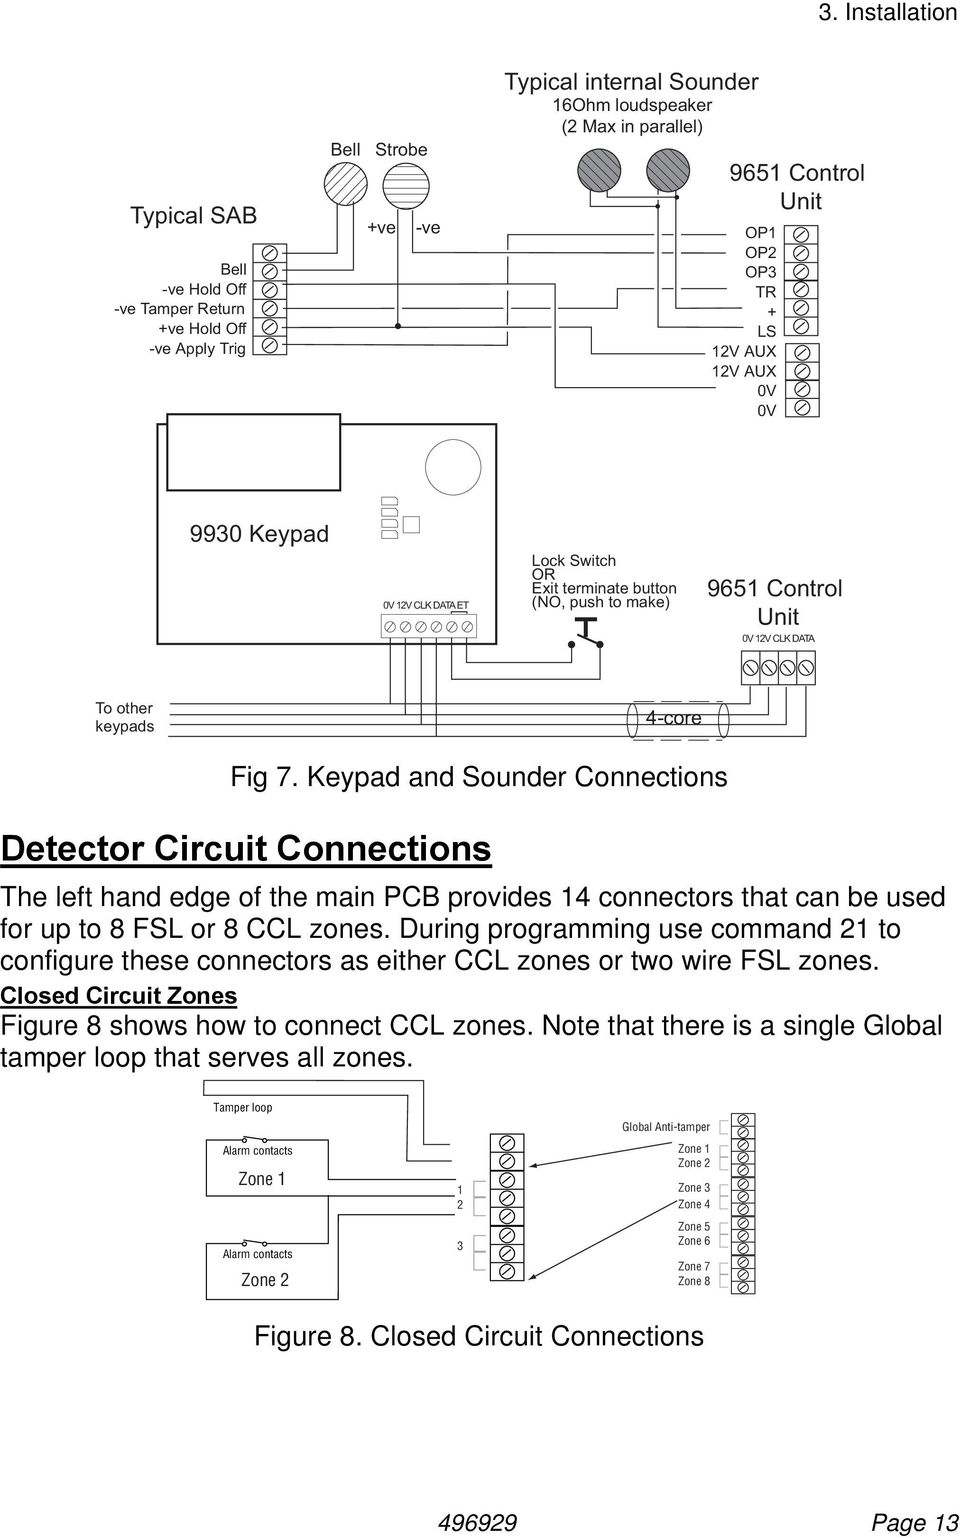 Installation And Programming Guide Hardwired Control Panel Pdf Storm Detector Circuit Diagram Keypad Sounder Connections The Left Hand Edge Of Main Pcb Provides